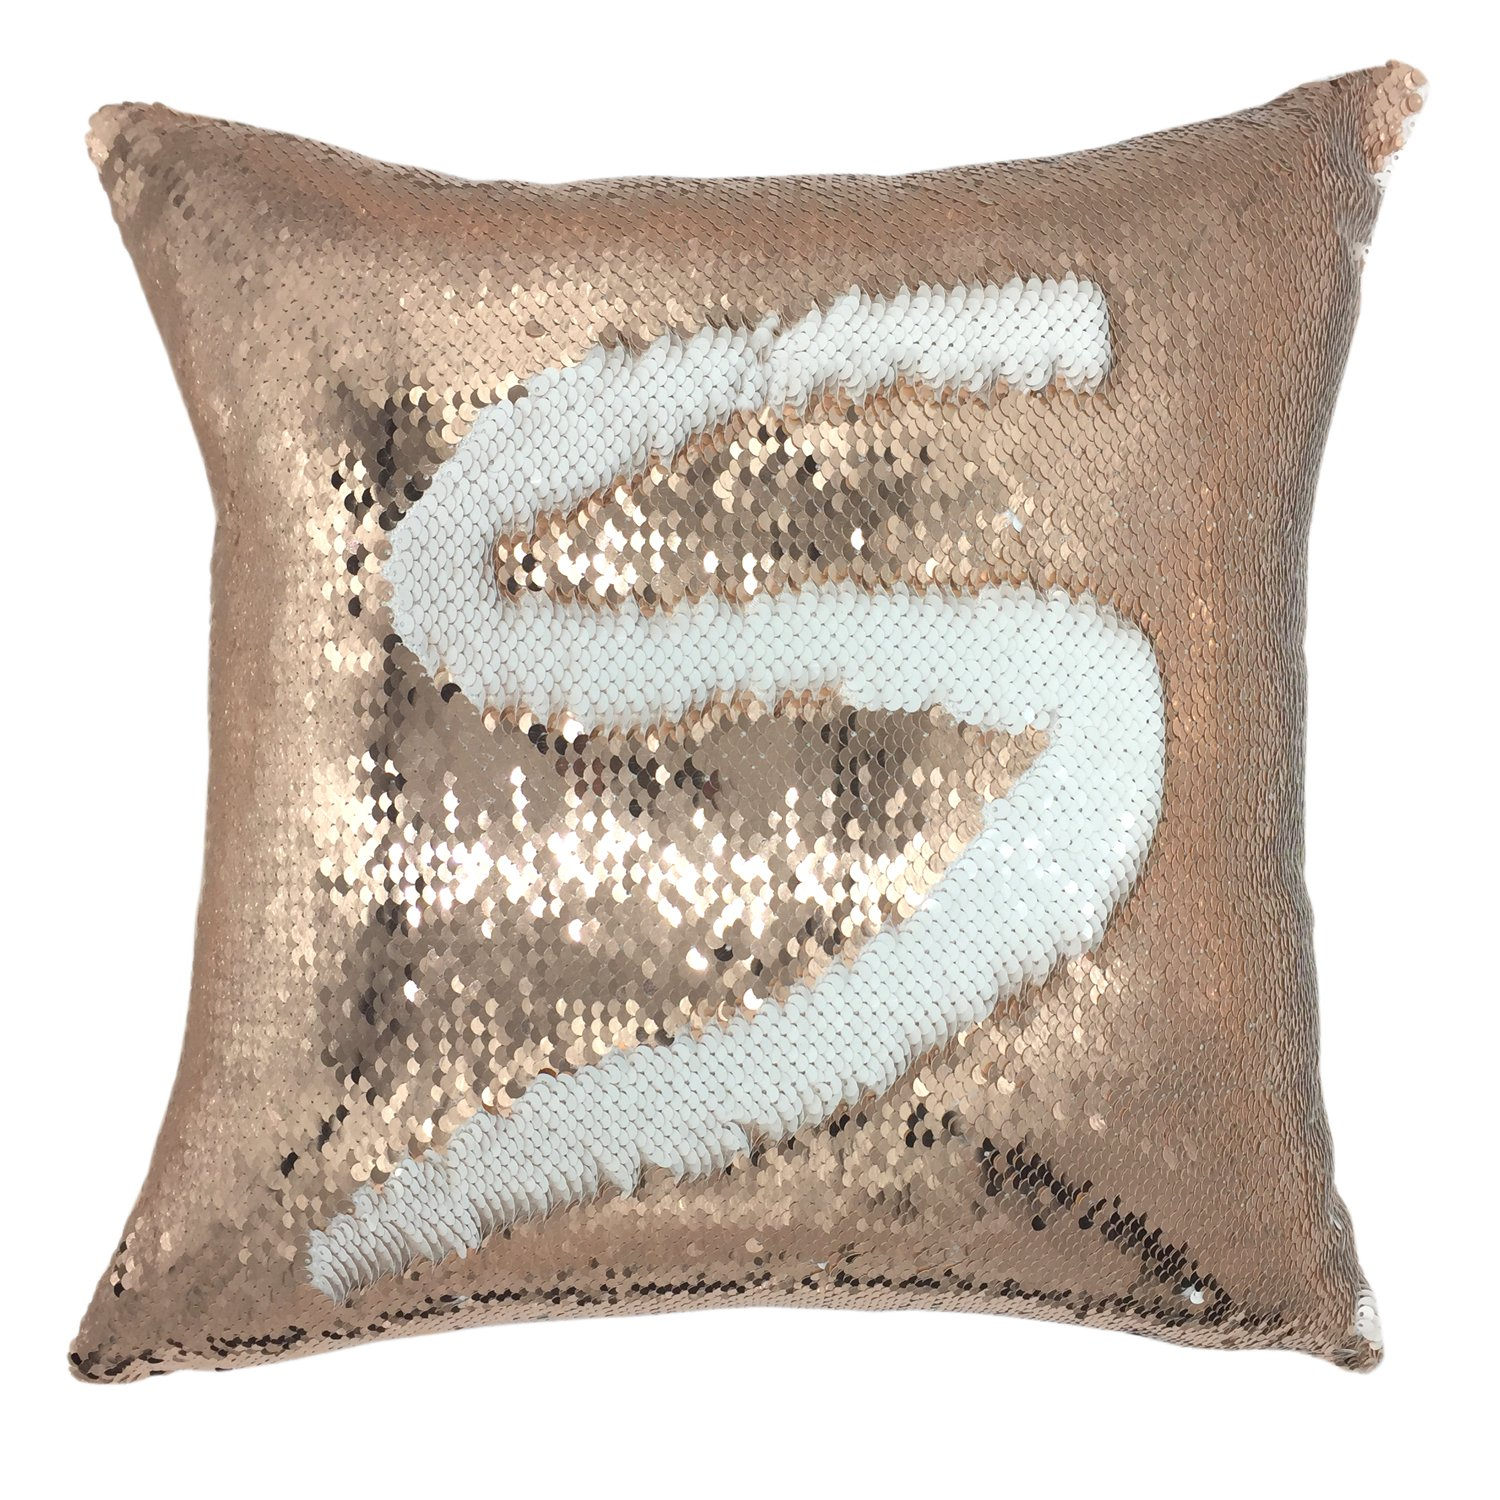 YOUR SMILE Mermaid Throw Pillow Case Magic Reversible Sequins Decorative Cushion Cover Pillowcase for Couch Sofa Bed,16 X 16 Inches, (Rose Gold/White)